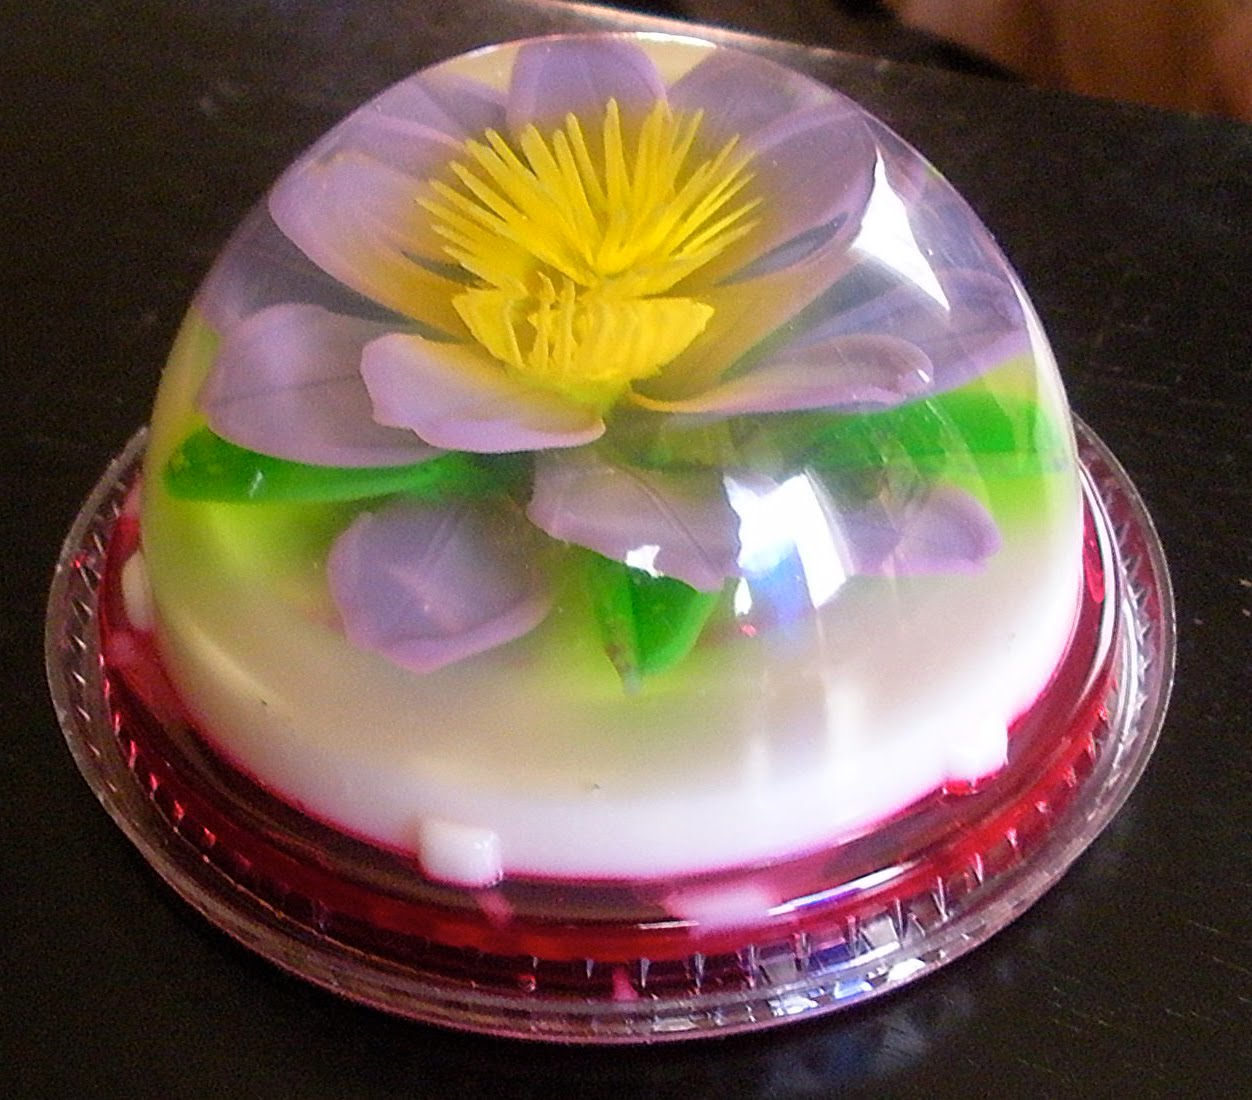 Jello Art Flowers http://bansheemoni.blogspot.com/2010/11/thanksgiving-2010.html